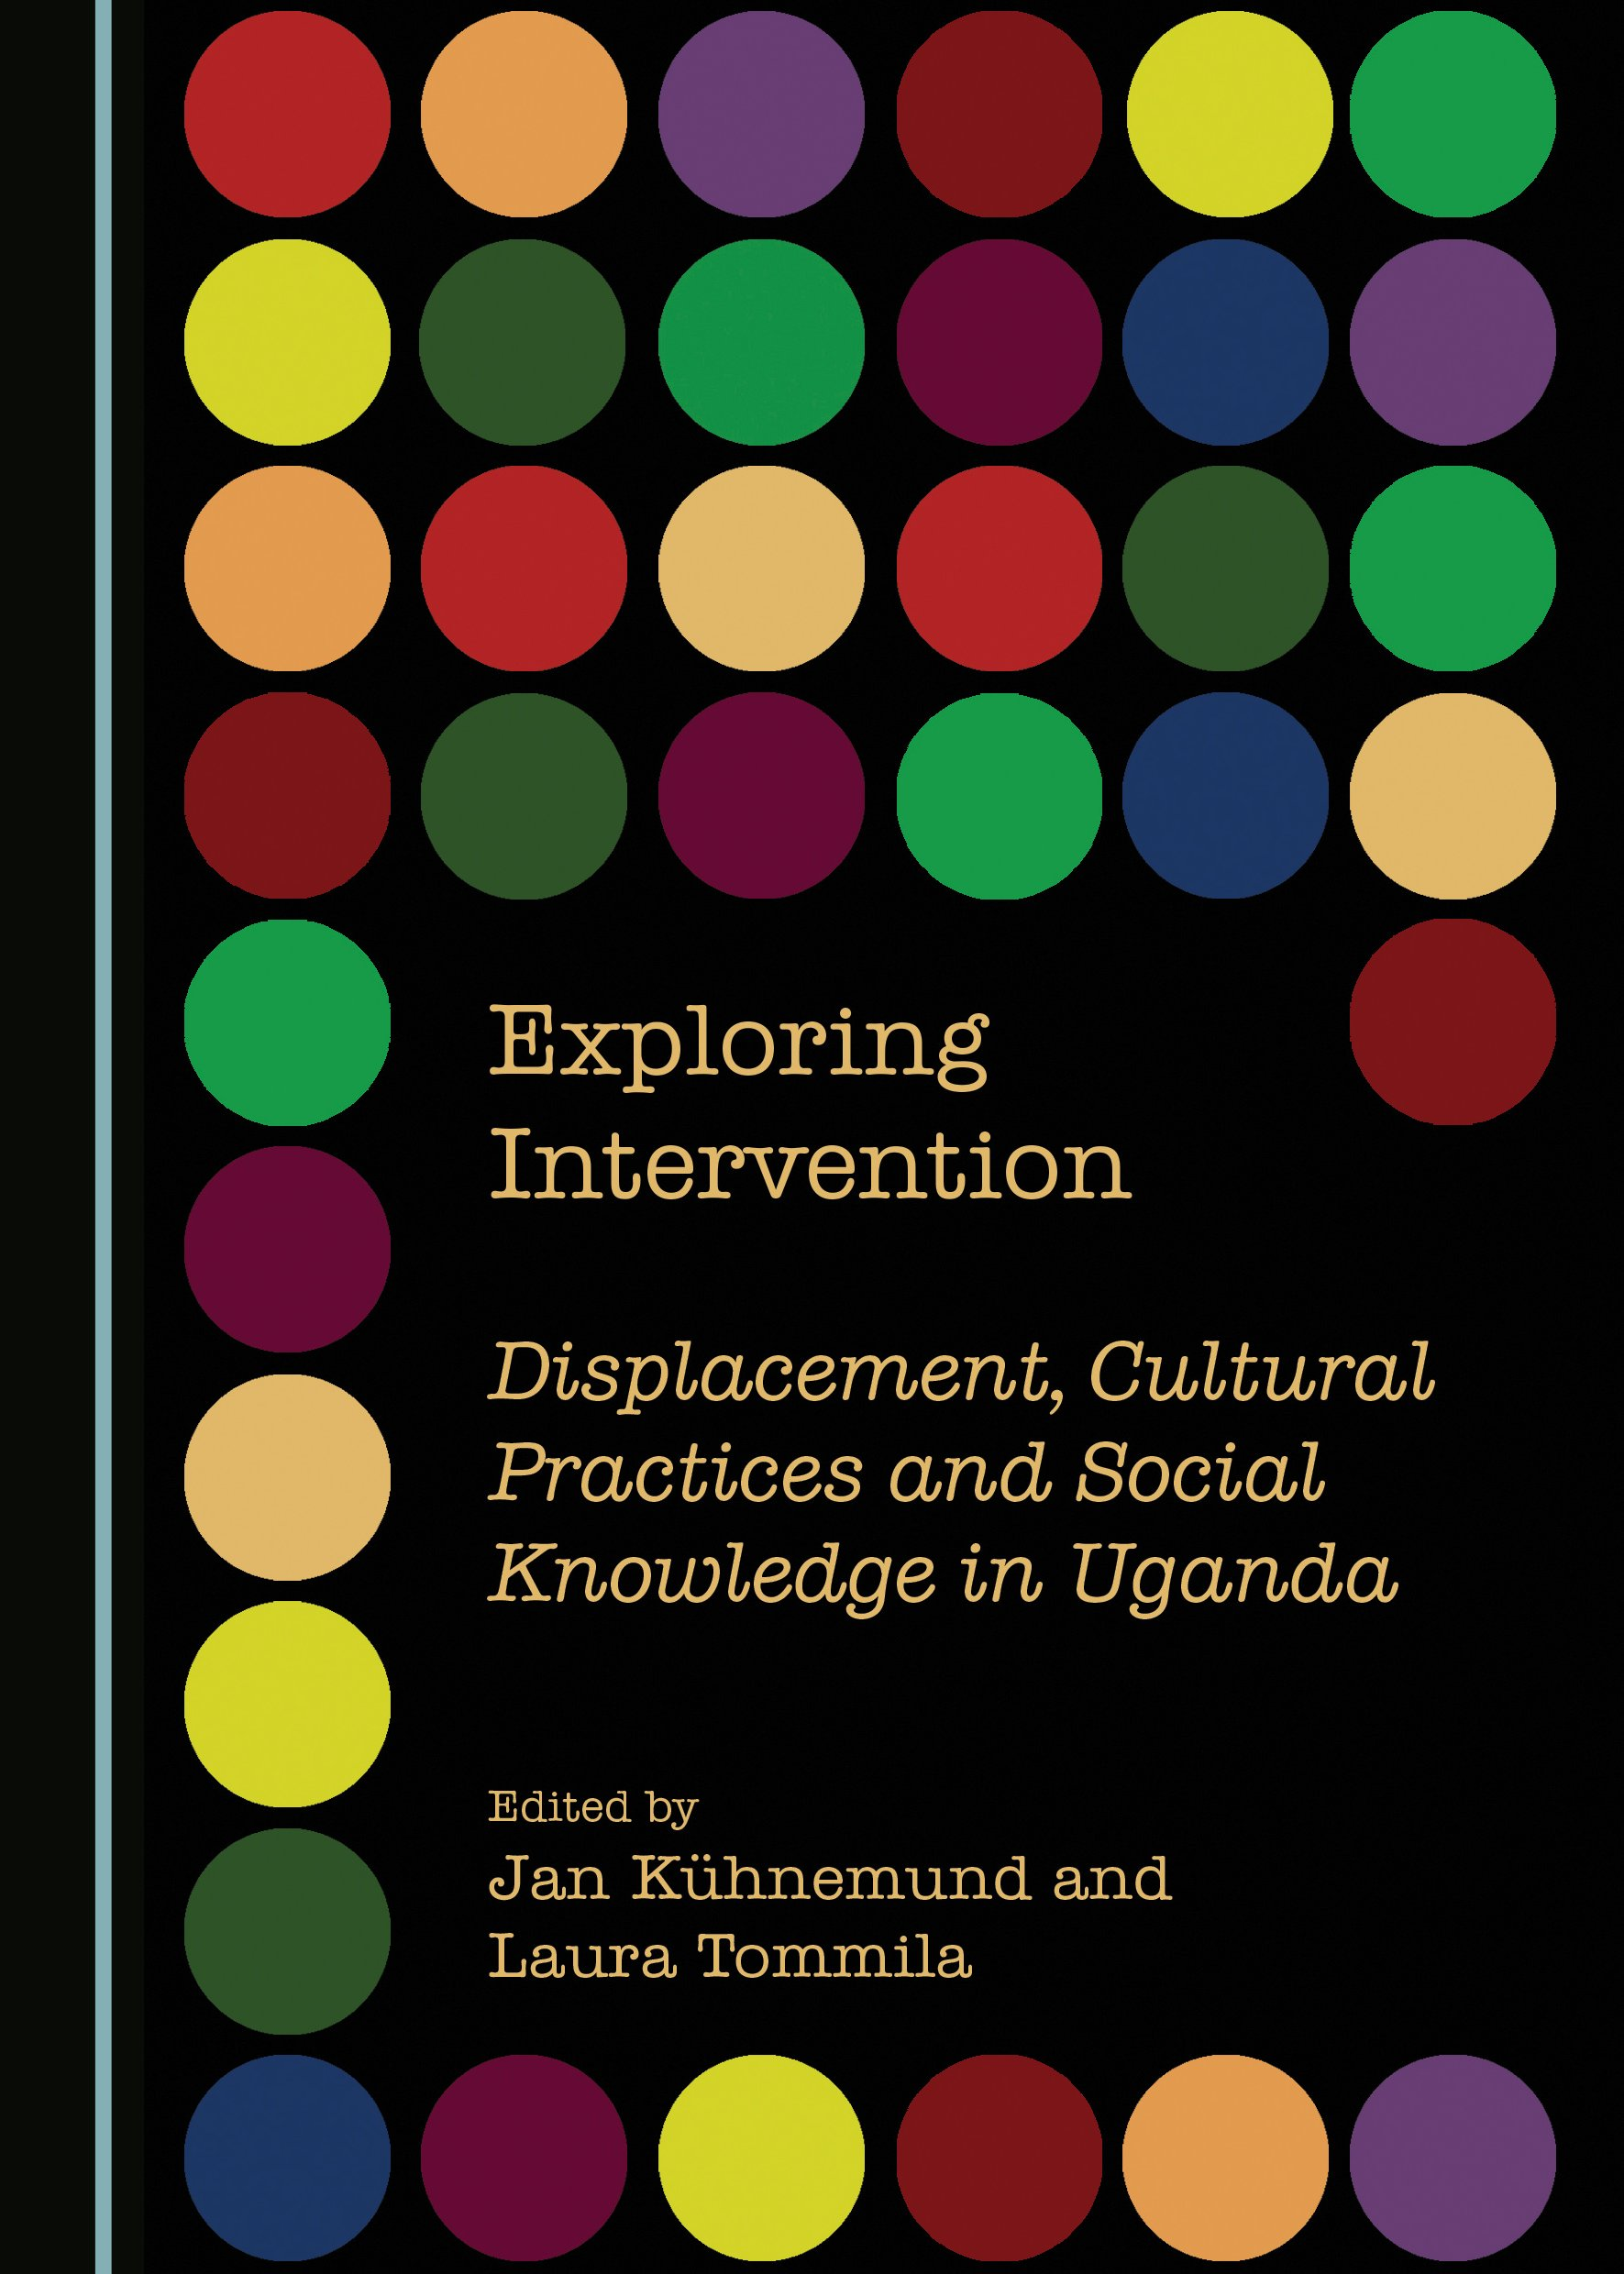 Exploring Intervention: Displacement, Cultural Practices and Social Knowledge in Uganda